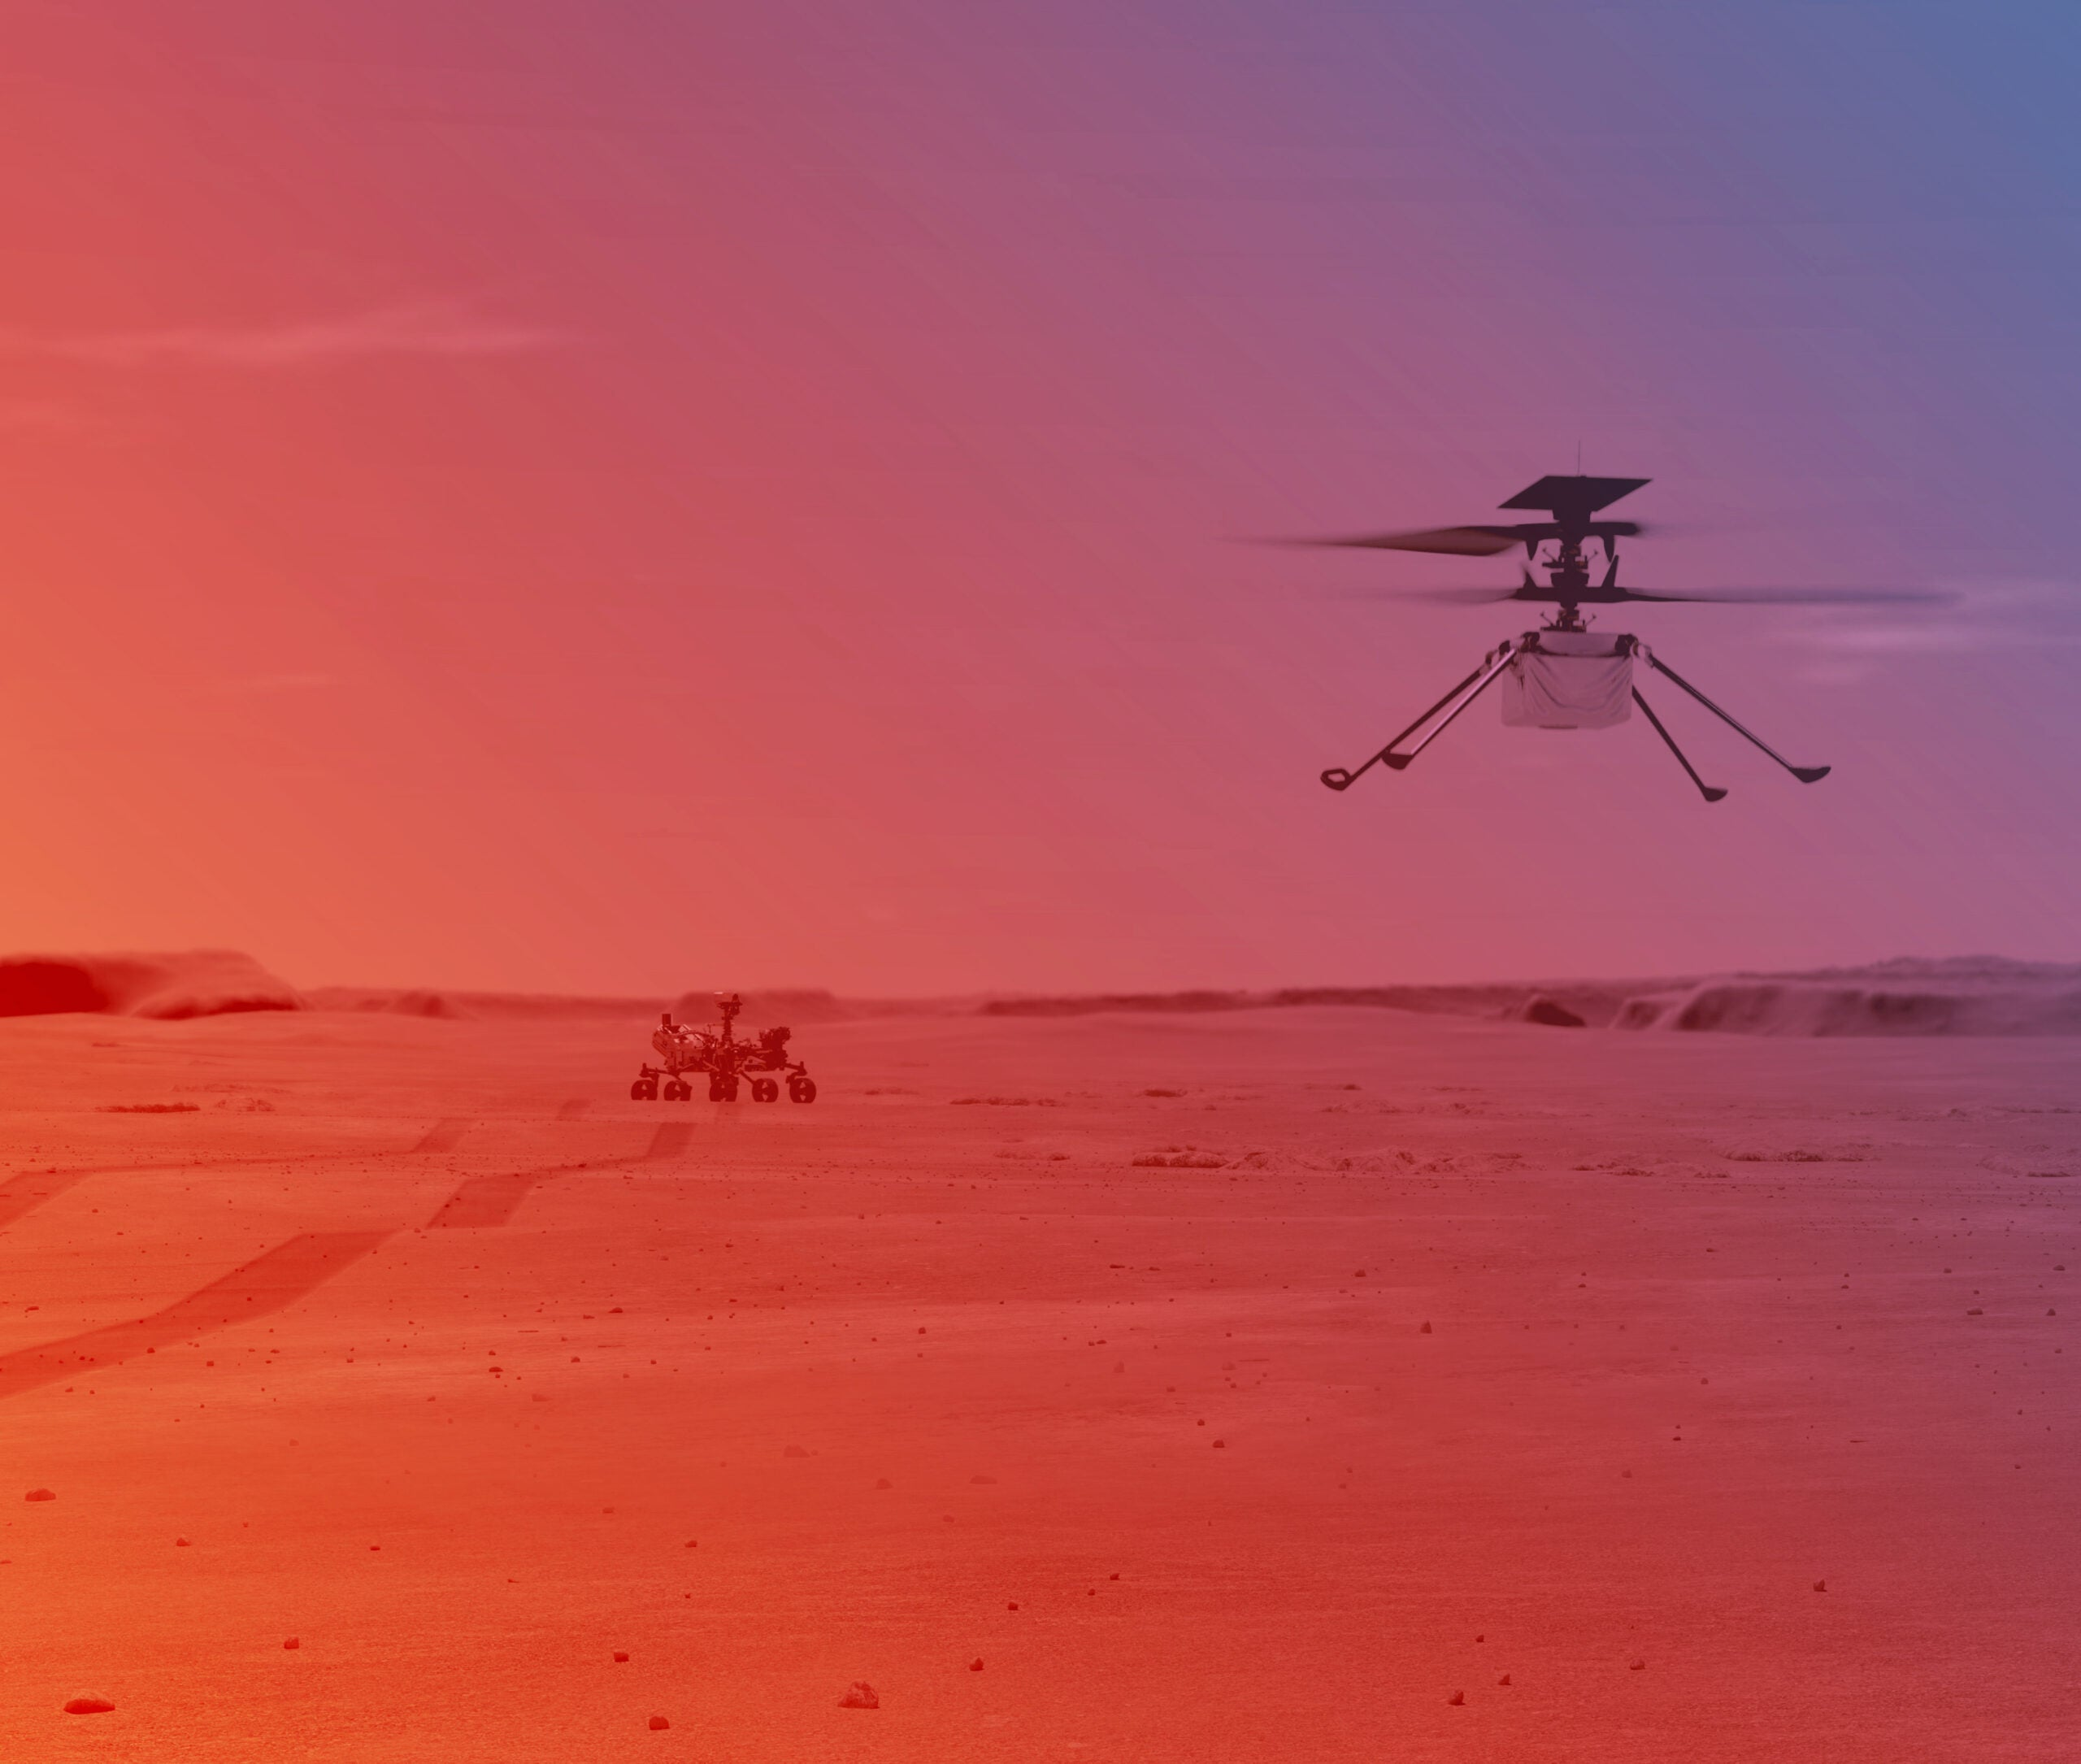 An illustration of the Mars Perseverance rover in the background and the Ingenuity helicopter in flight in the foreground.